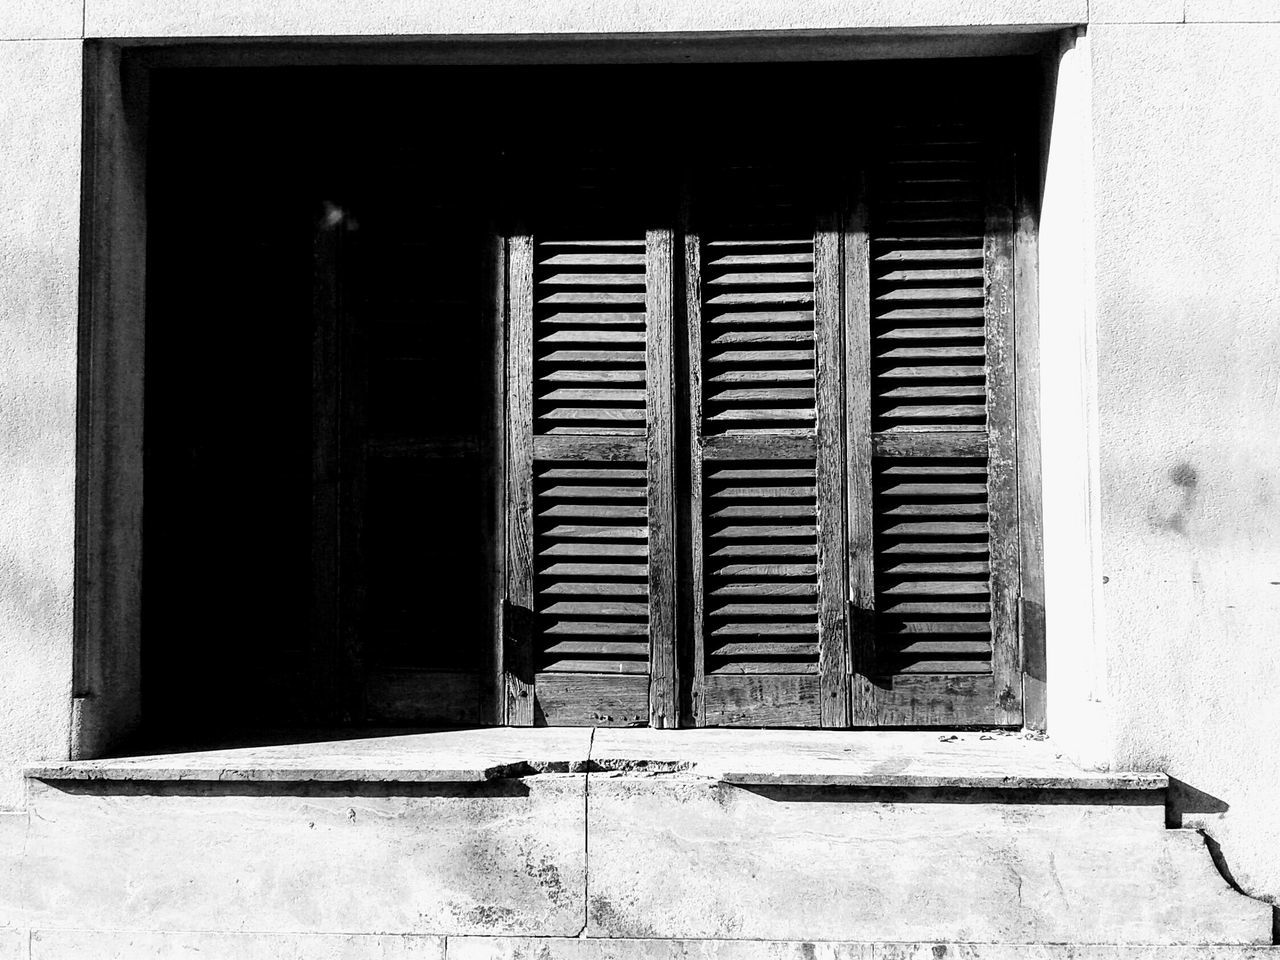 architecture, window, built structure, day, building exterior, no people, sunlight, outdoors, close-up